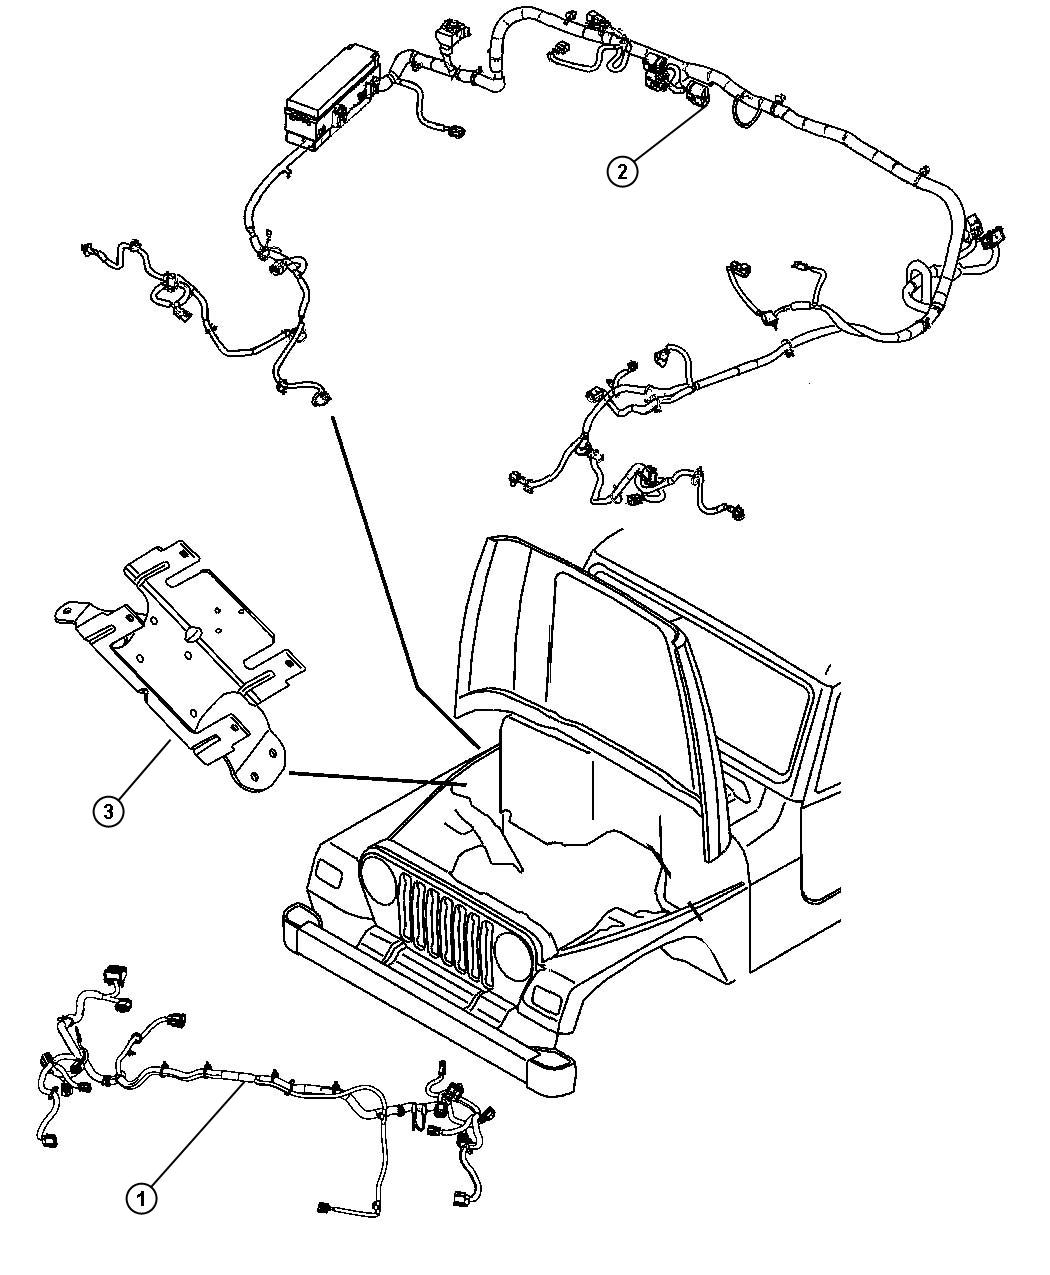 Jeep Wrangler Wiring. Headlamp. Export. [front end parts